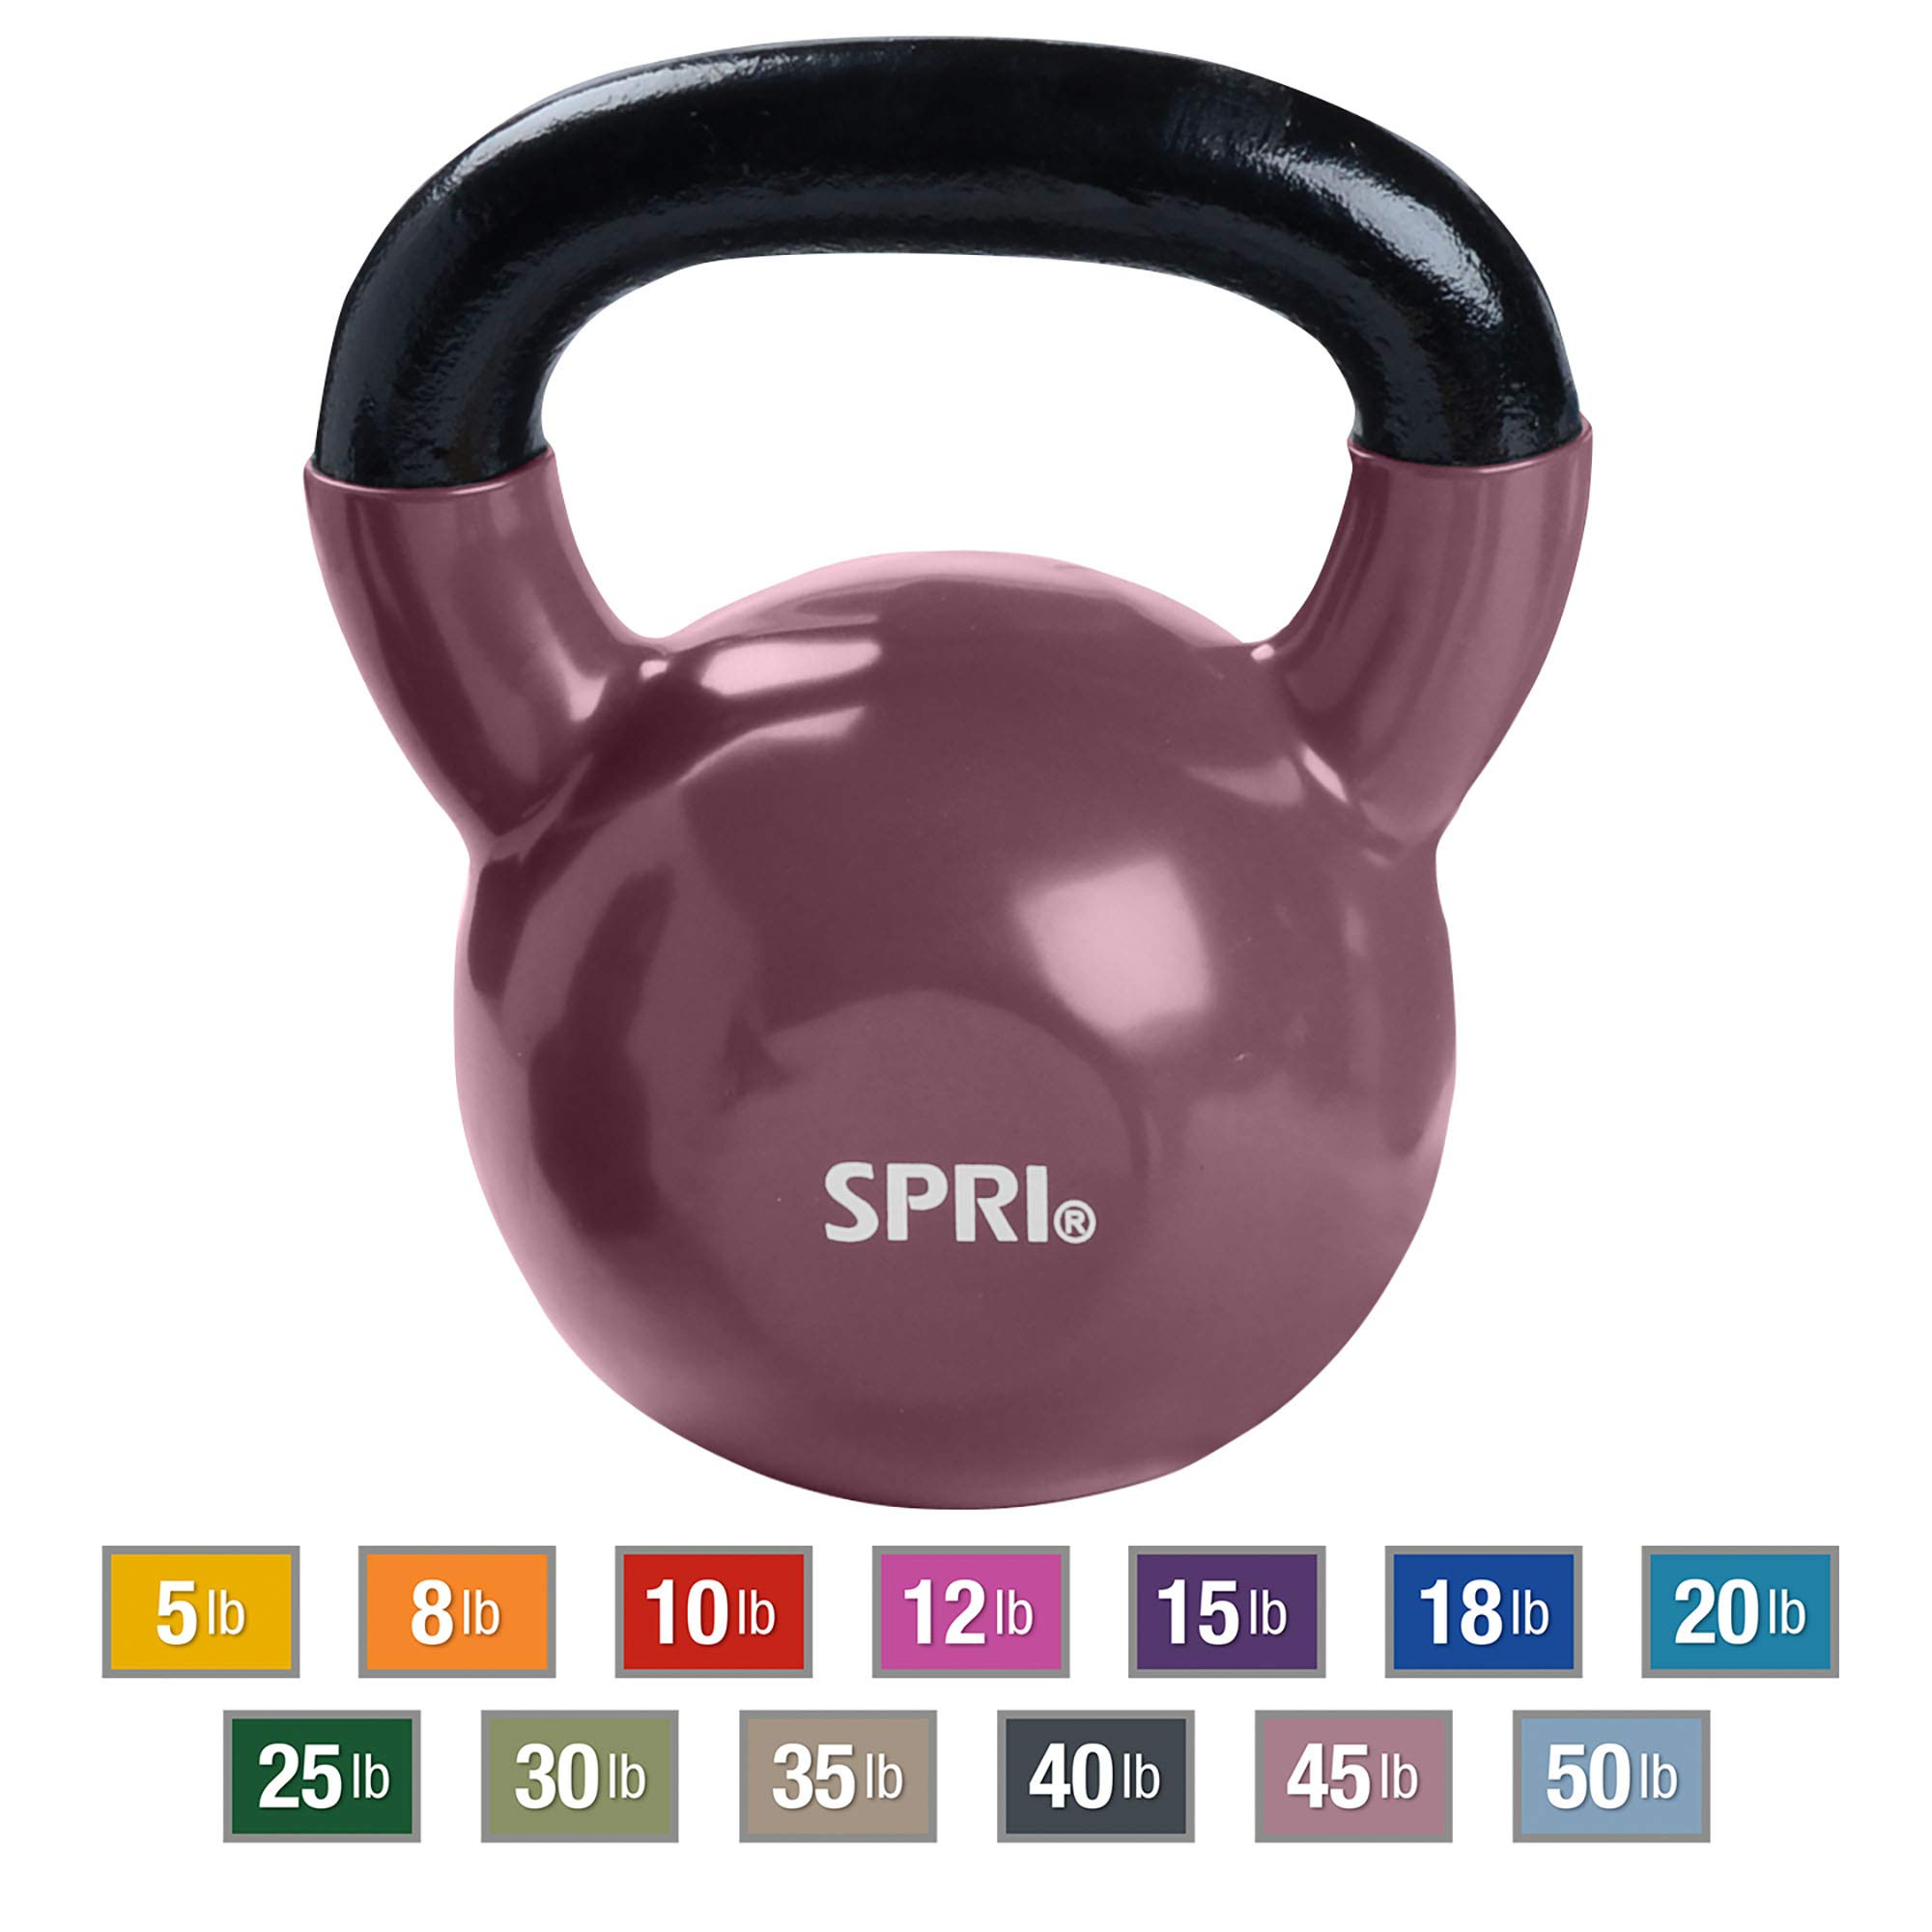 SPRI Kettlebell Weights Deluxe Cast Iron Vinyl Coated Comfort Grip Wide Handle Color Coded Kettlebell Weight Set (Grey/Purple, 45-Pound)